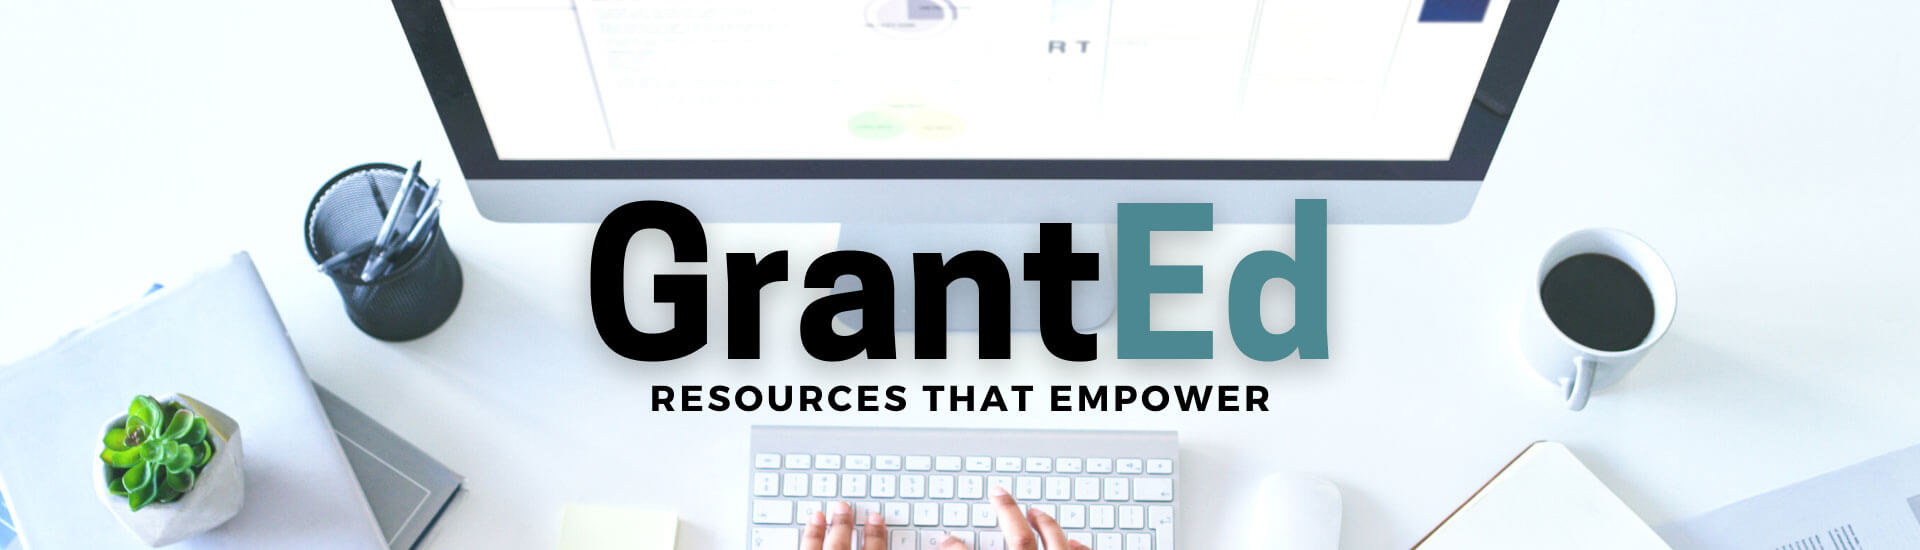 GrantEd, Grant educational resources and trainings.